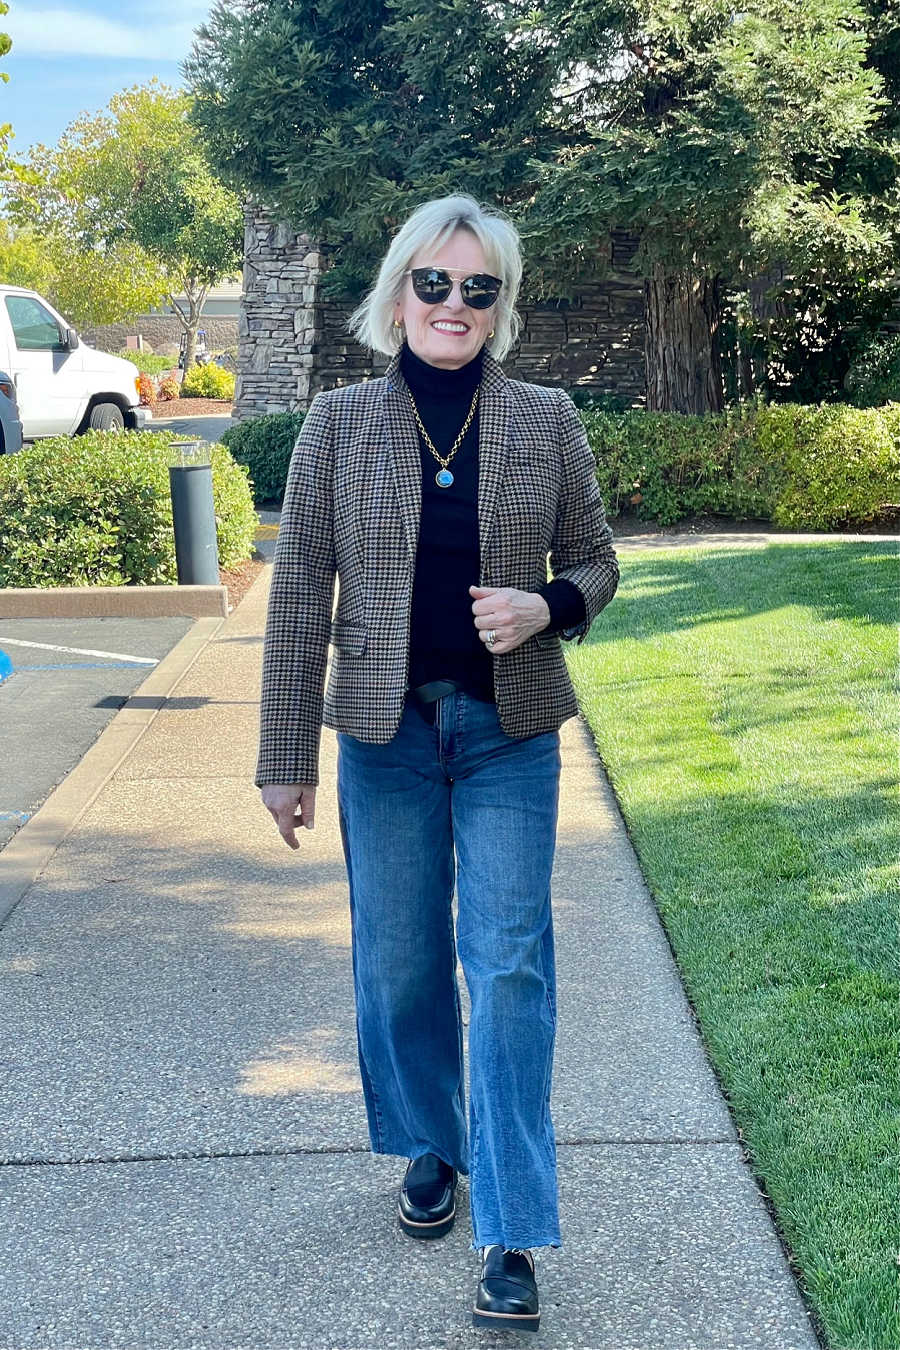 over 50 woman walking in wide legs jeans trend outfit